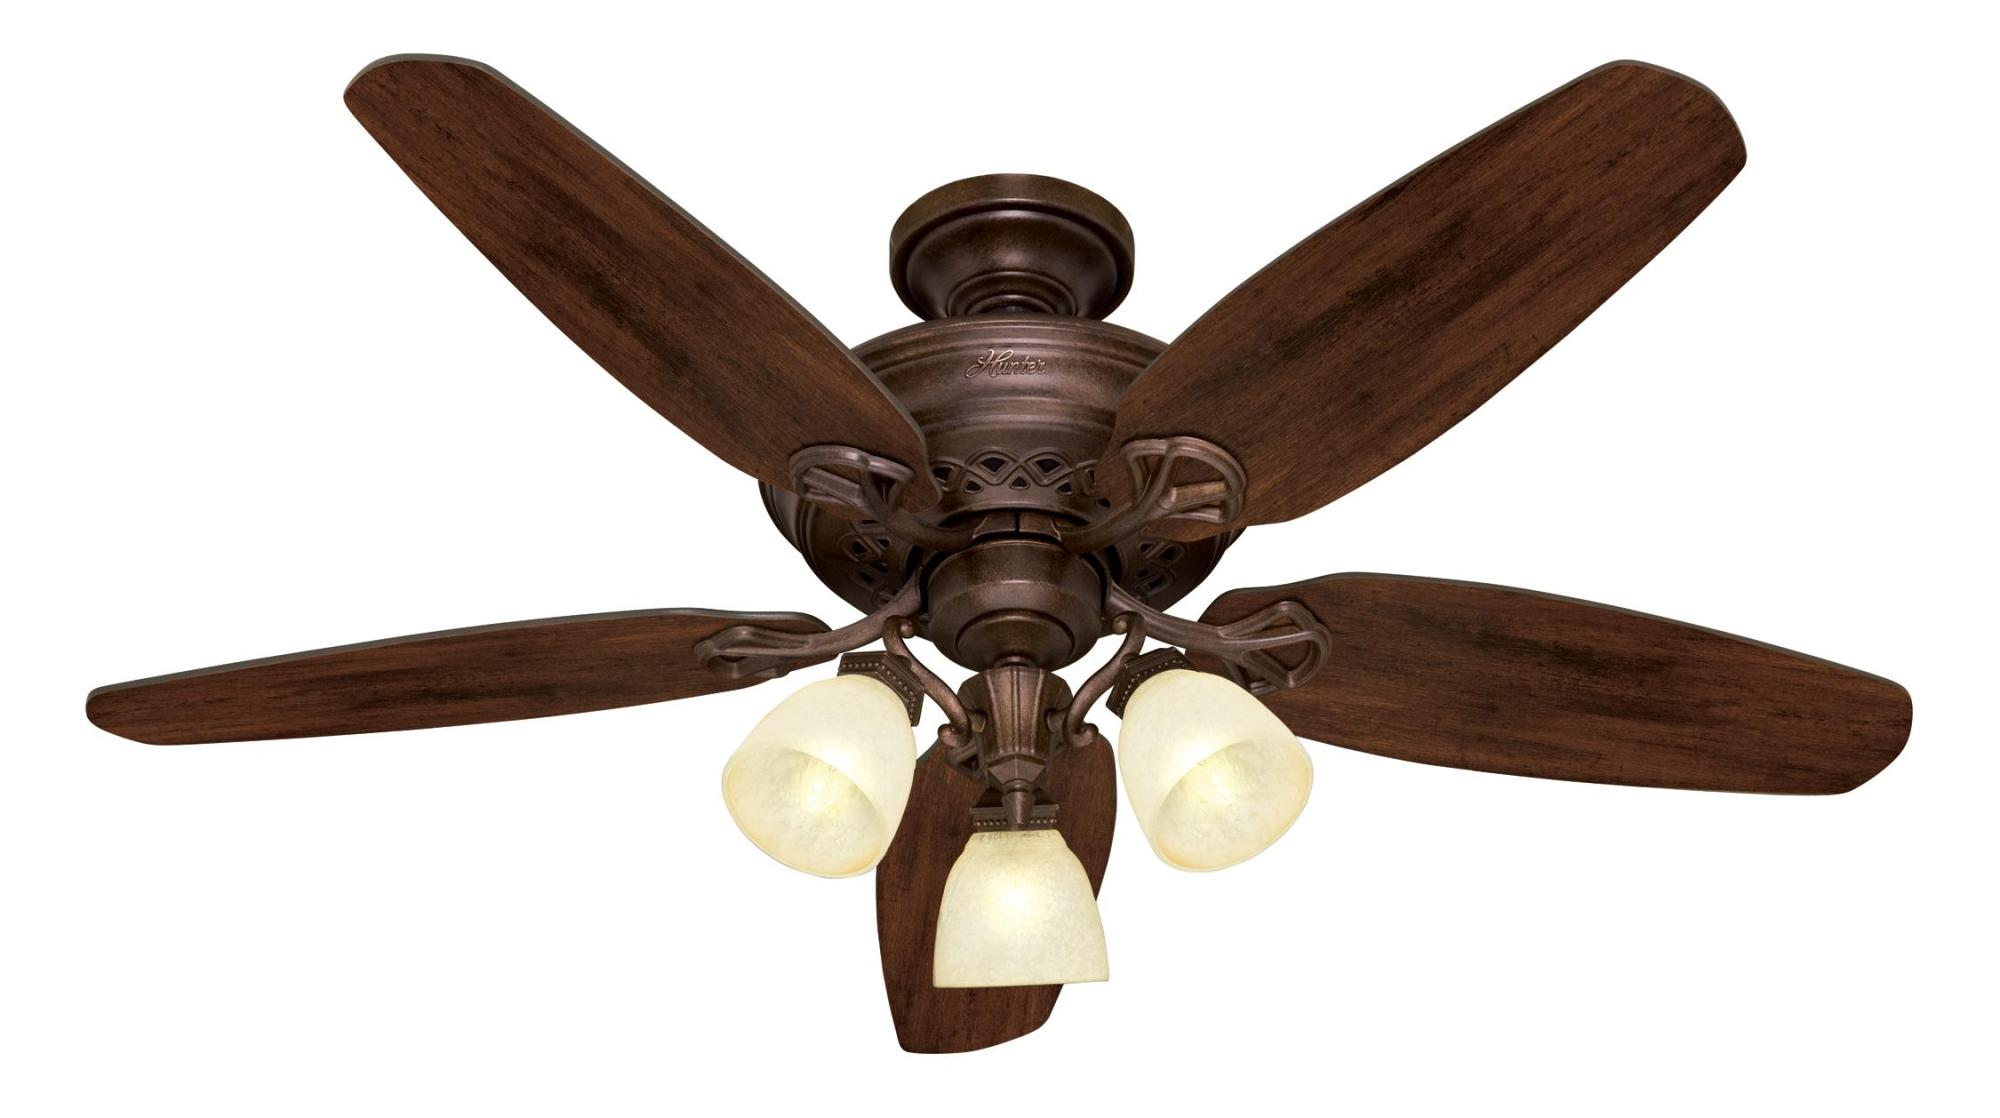 hight resolution of how to install ceiling fan downrod sizes floor drying fans home depot orient wall fans price in india 64gb price of havells opus ceiling fan use